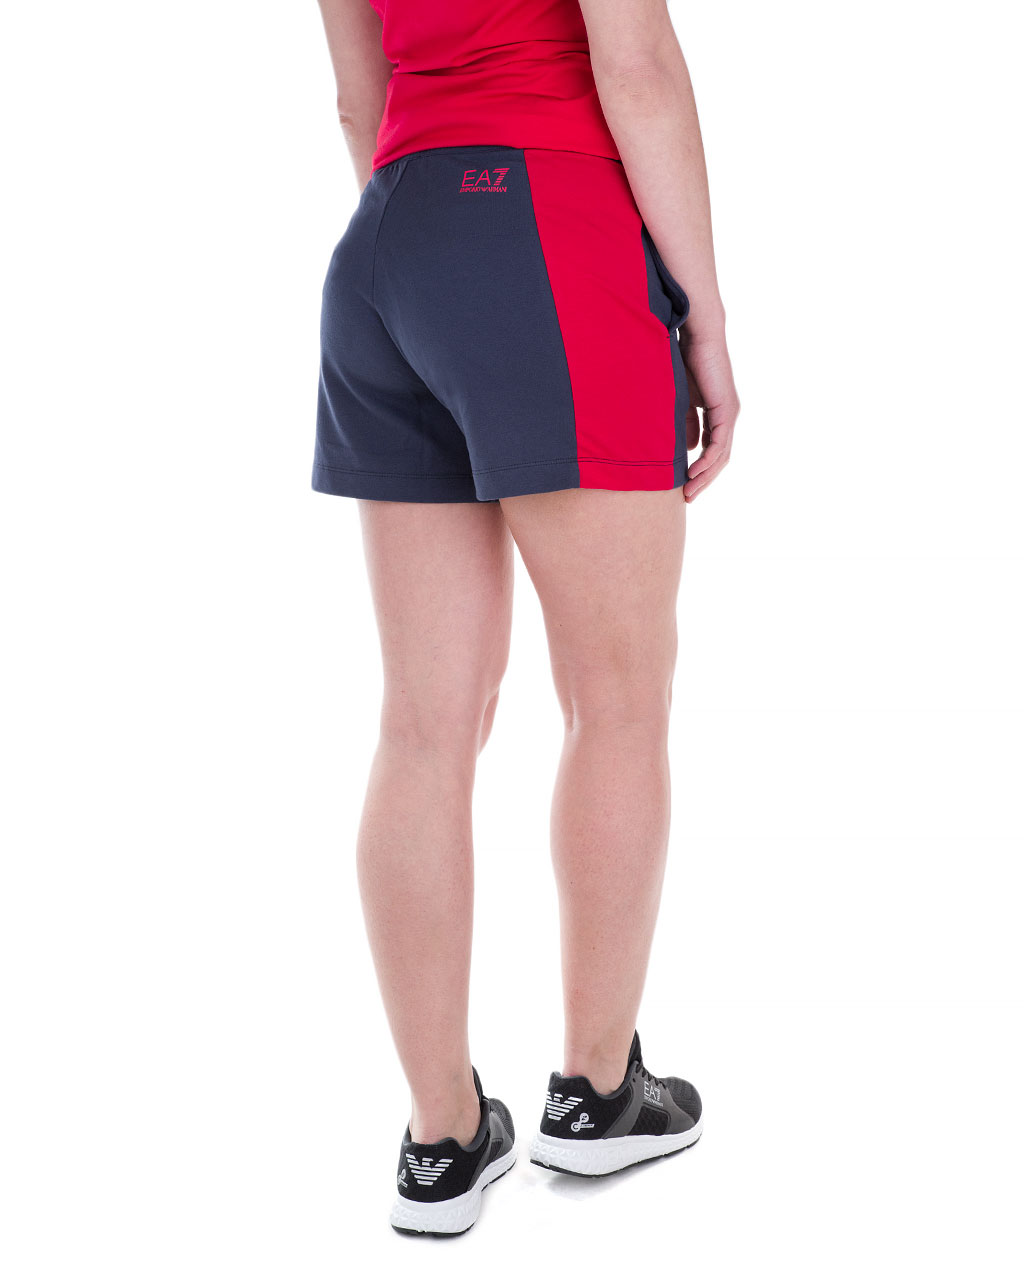 Women's sports shorts 3GTS55-TN31Z-1554/91 (6)